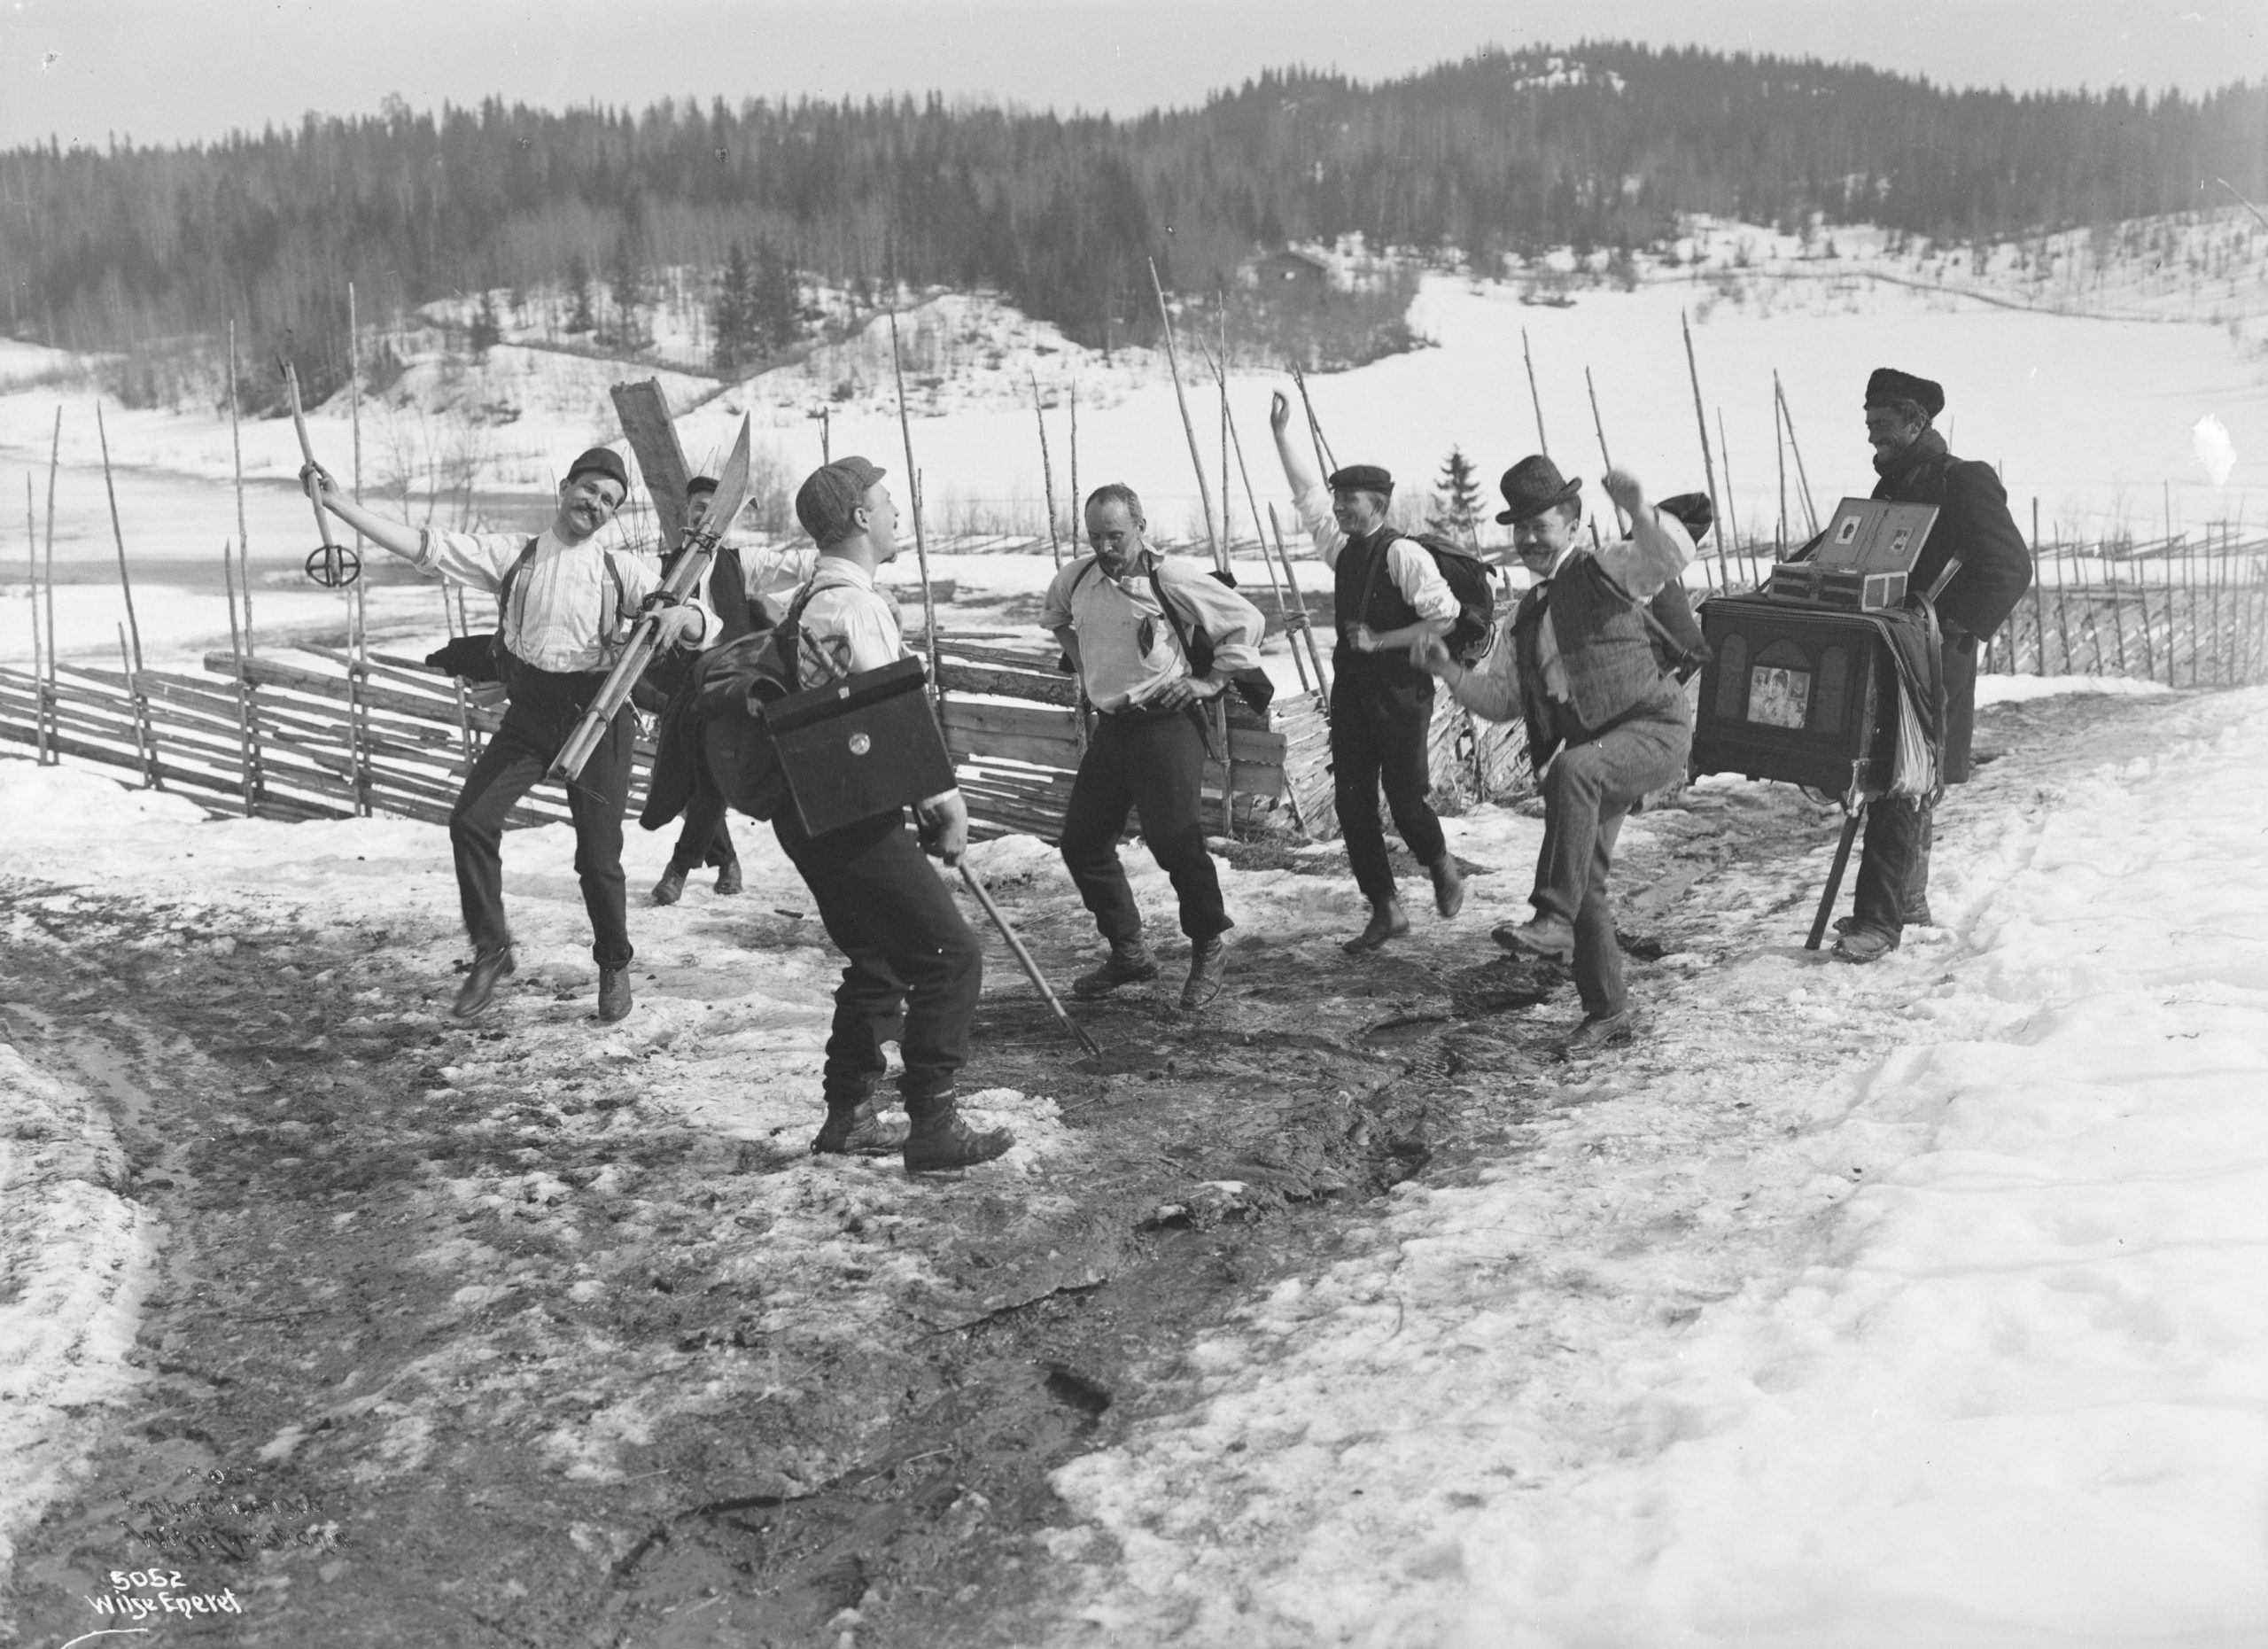 This photo comes with the caption «The idiots are dancing». Brøttum, Sjusjøen, Ringsaker, Hedmark, Norway - Easter in 1906. | Photo: Anders Beer Wilse - Norsk Folkemuseum cc pdm.